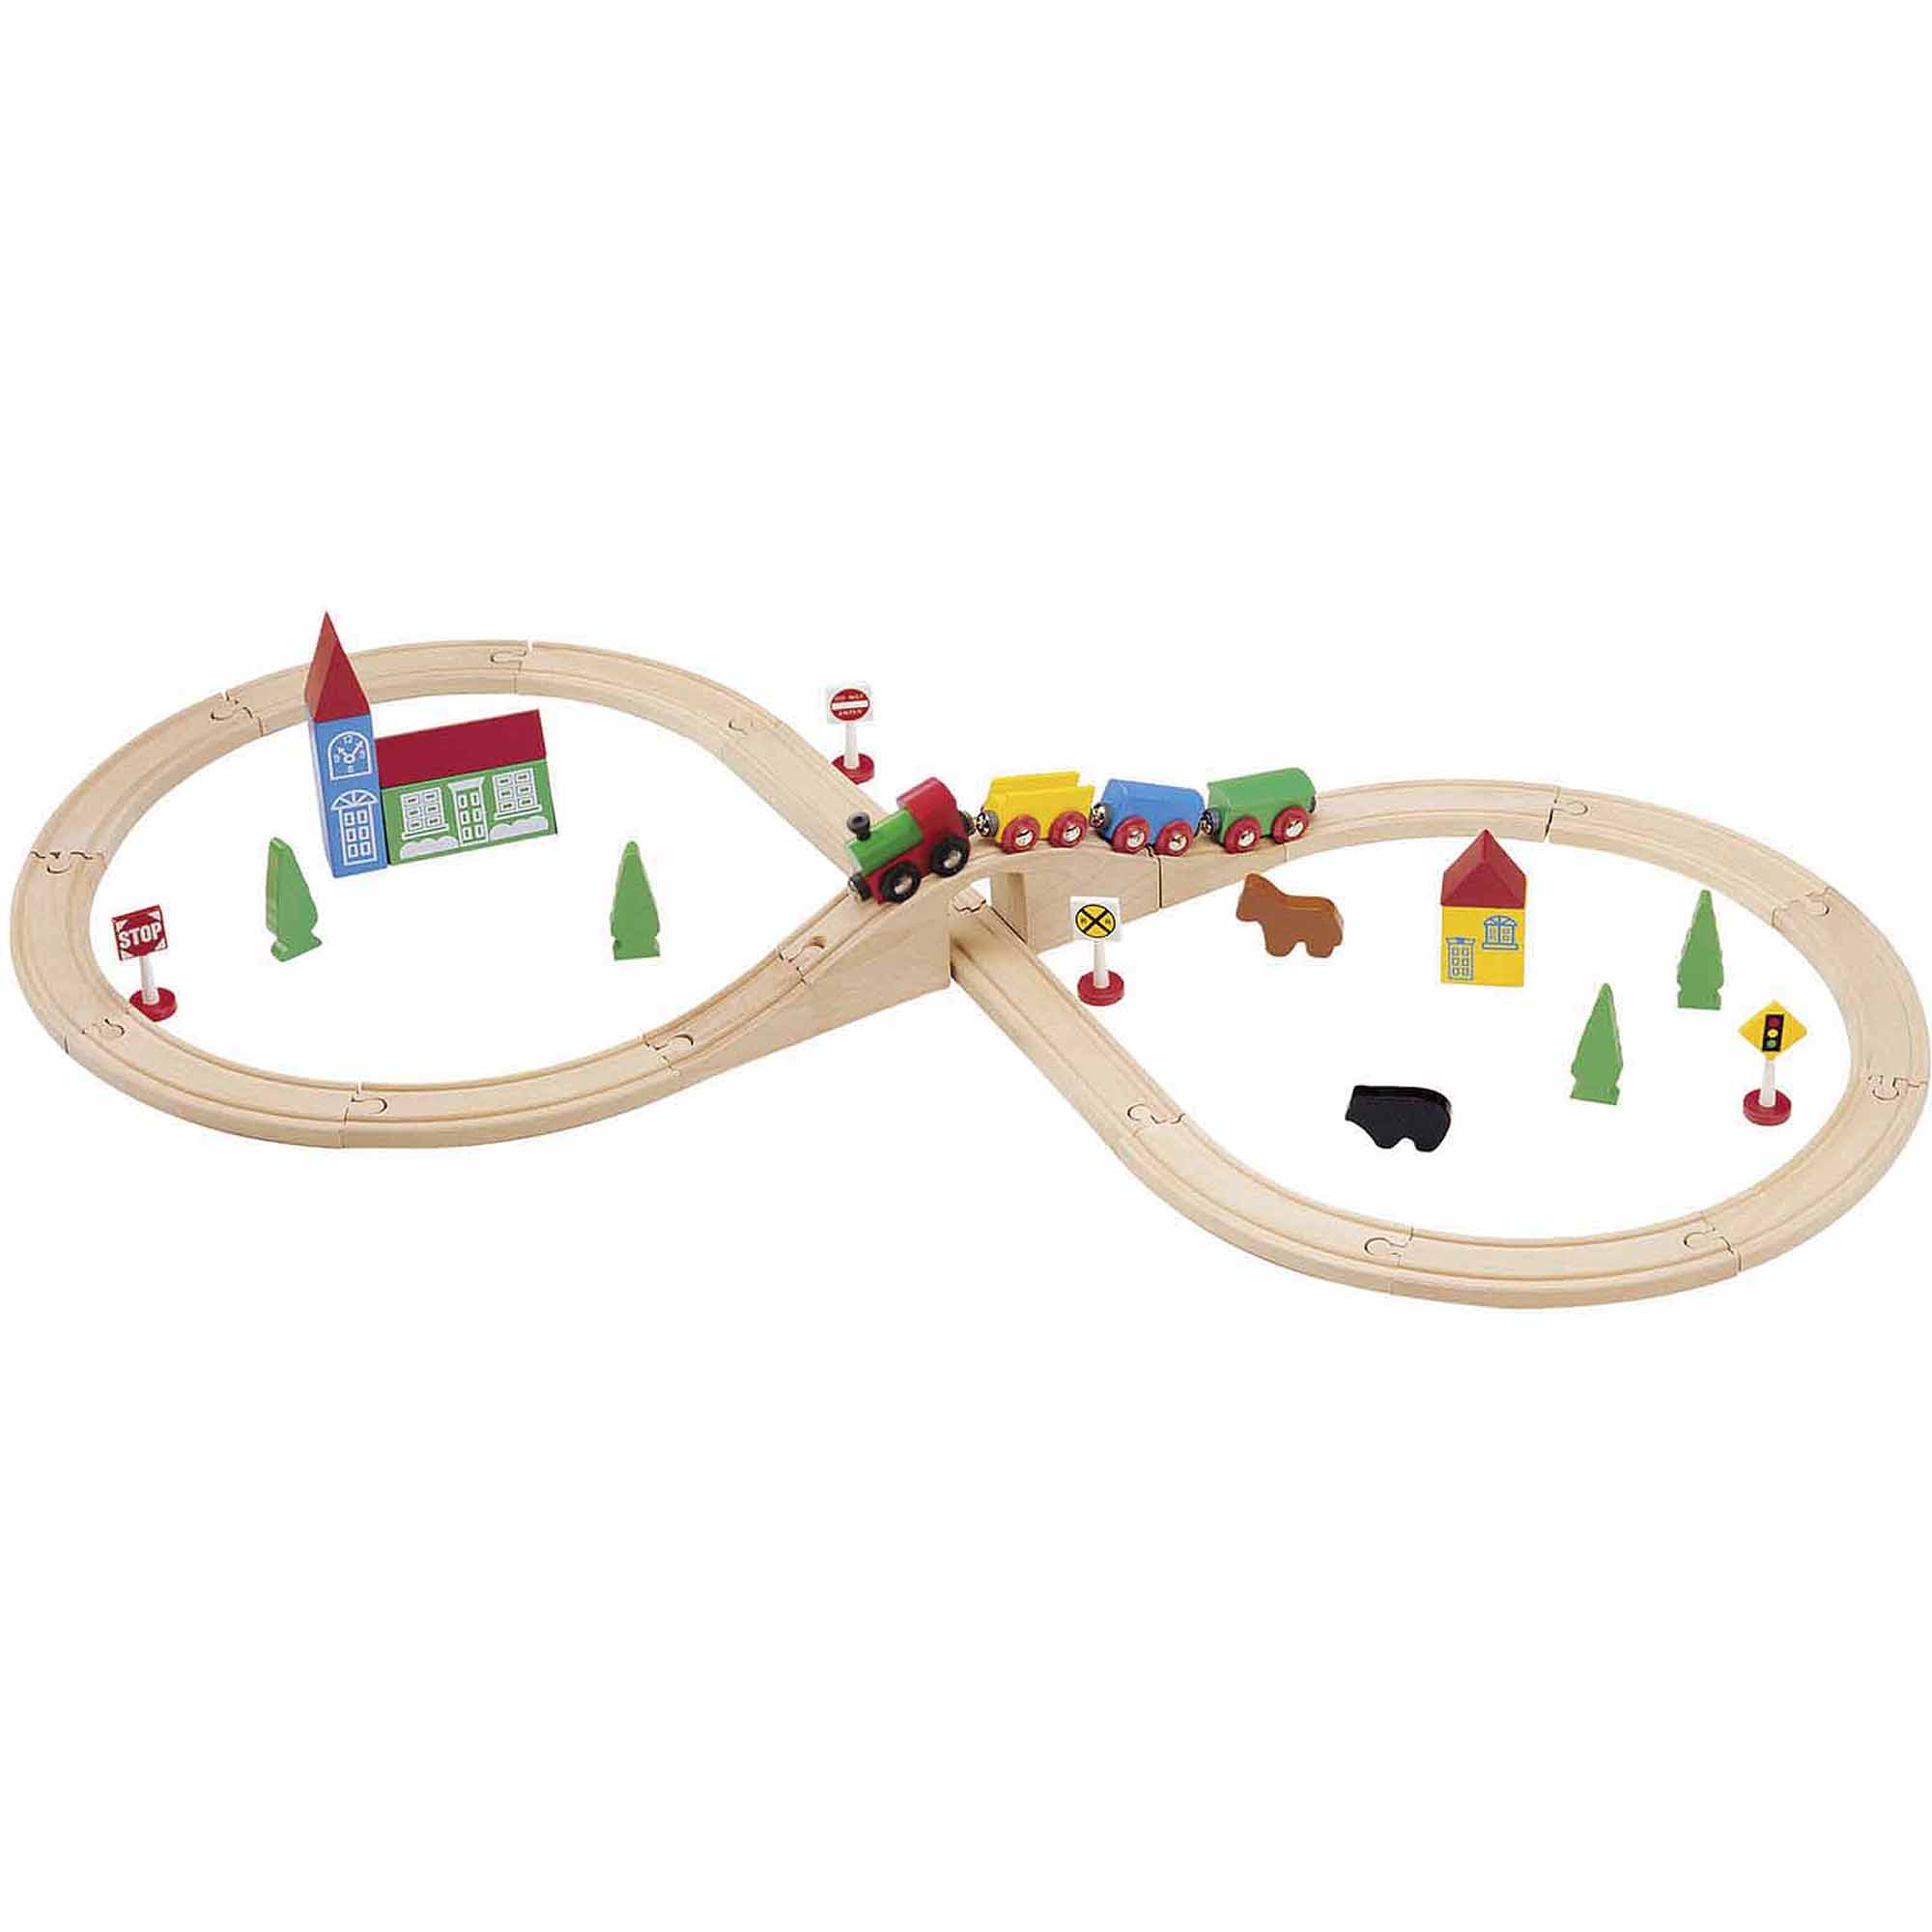 Maxim Enterprise 37-Piece Figure 8 Wooden Train Set by WoodenTracks.com Inc